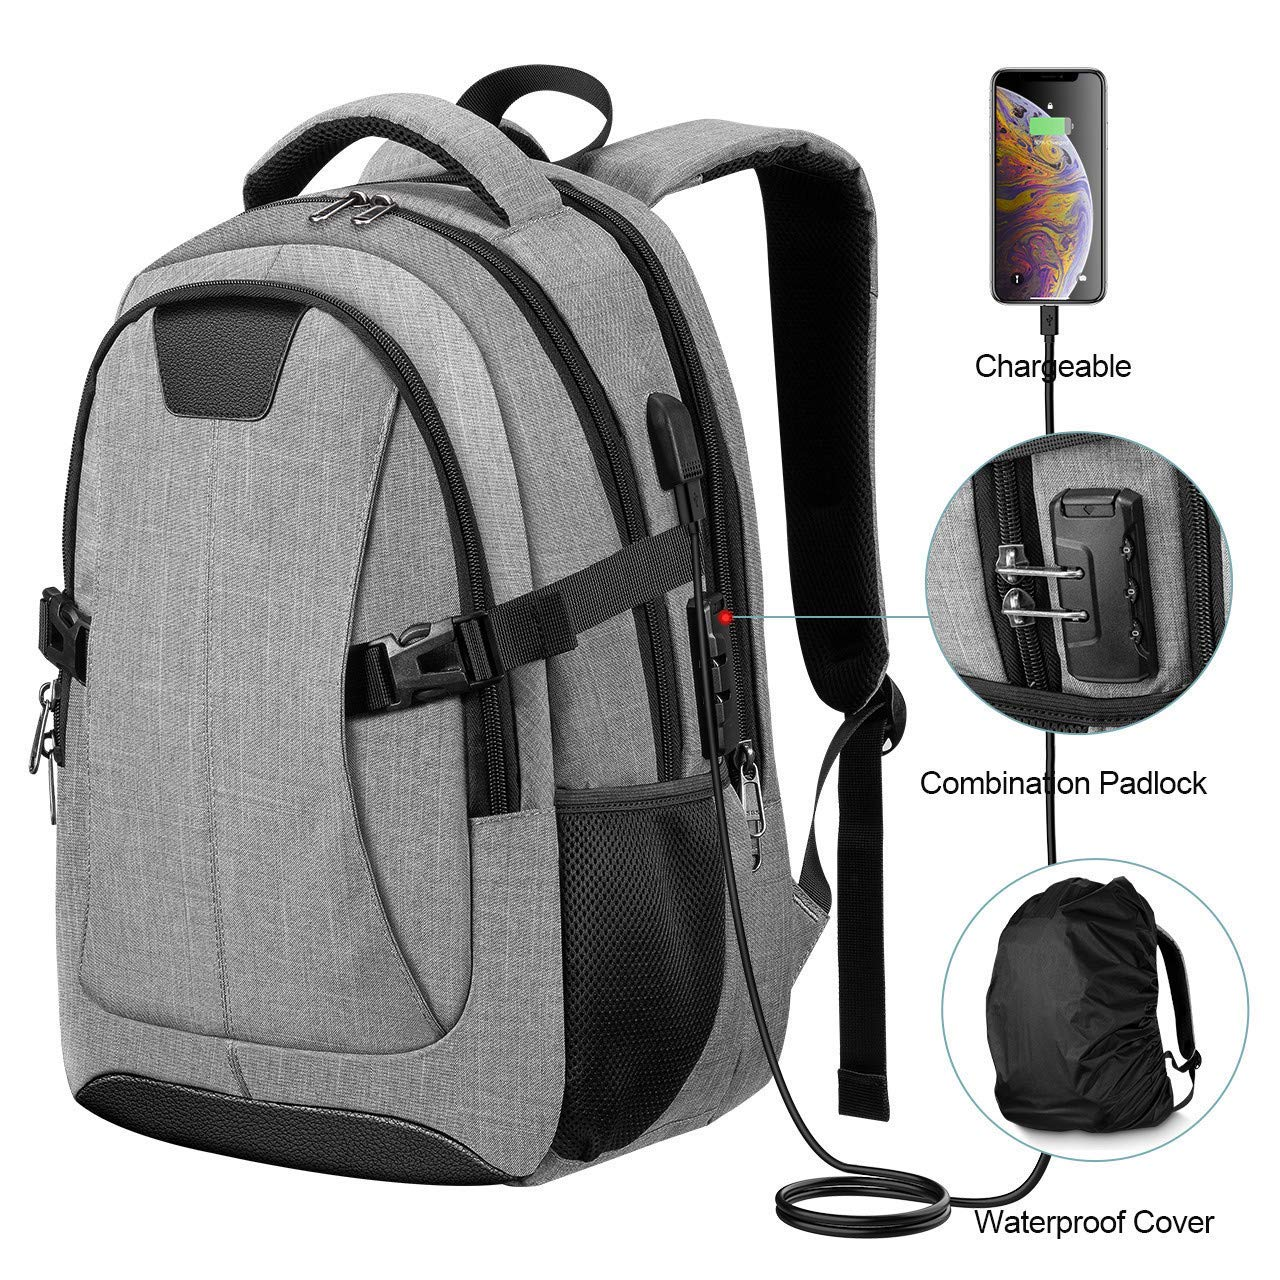 5cf3c6b59f13 Travel Laptop Backpack, PICTEK Anti-Theft Business Water Resistant Backpack  Computer Bag with USB Charging Port for Men Womens Boys Girls, College ...